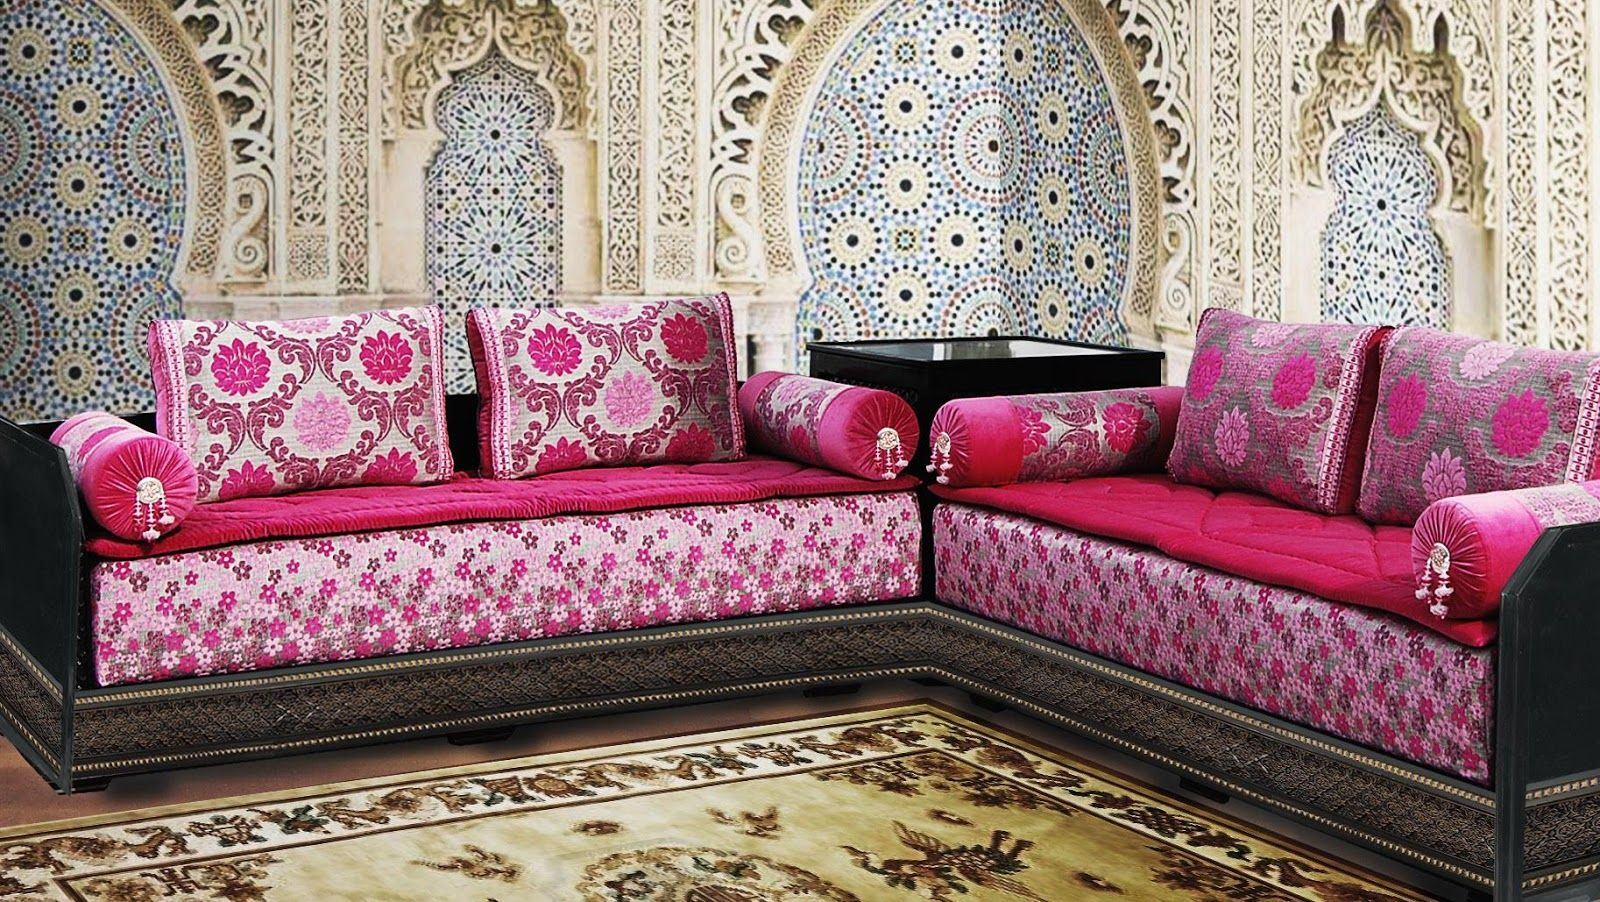 canape arabe o acheter un salon marocain en france with canape arabe arabie saoudite canap. Black Bedroom Furniture Sets. Home Design Ideas